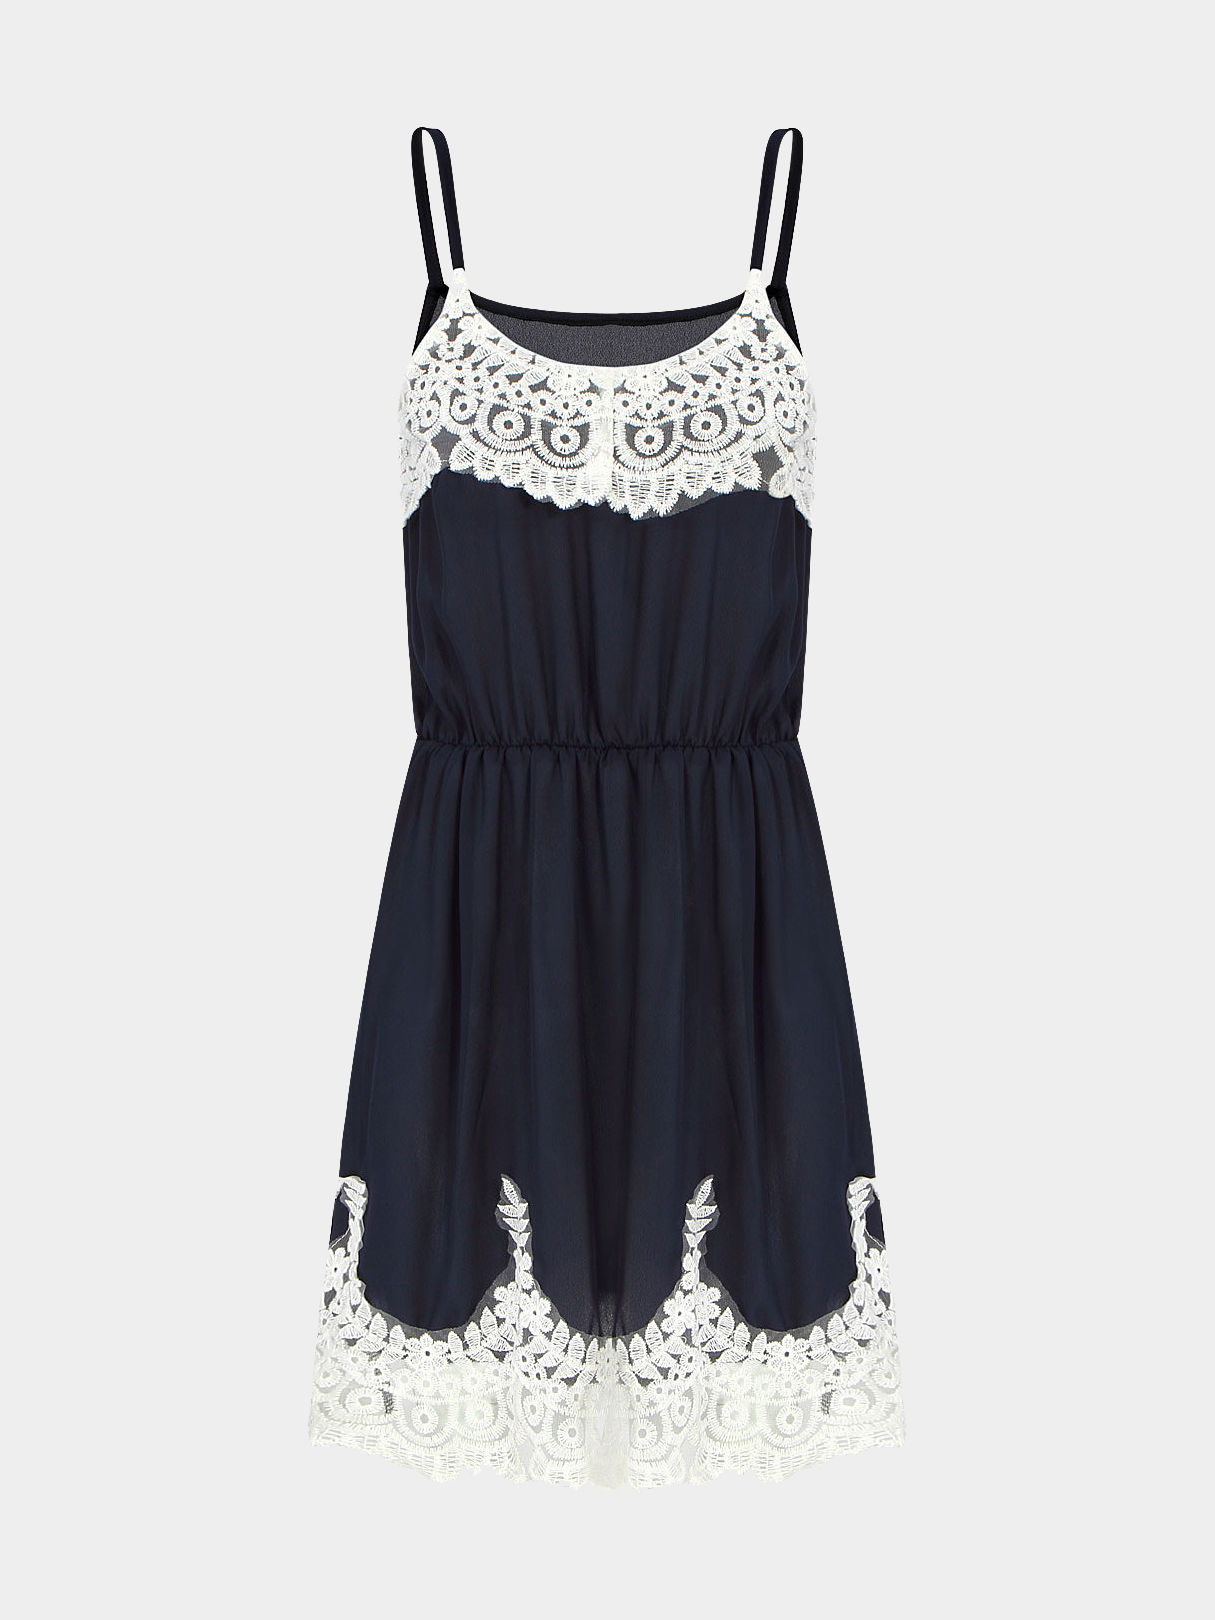 Blue Cami Dress With Crochet Lace Insert